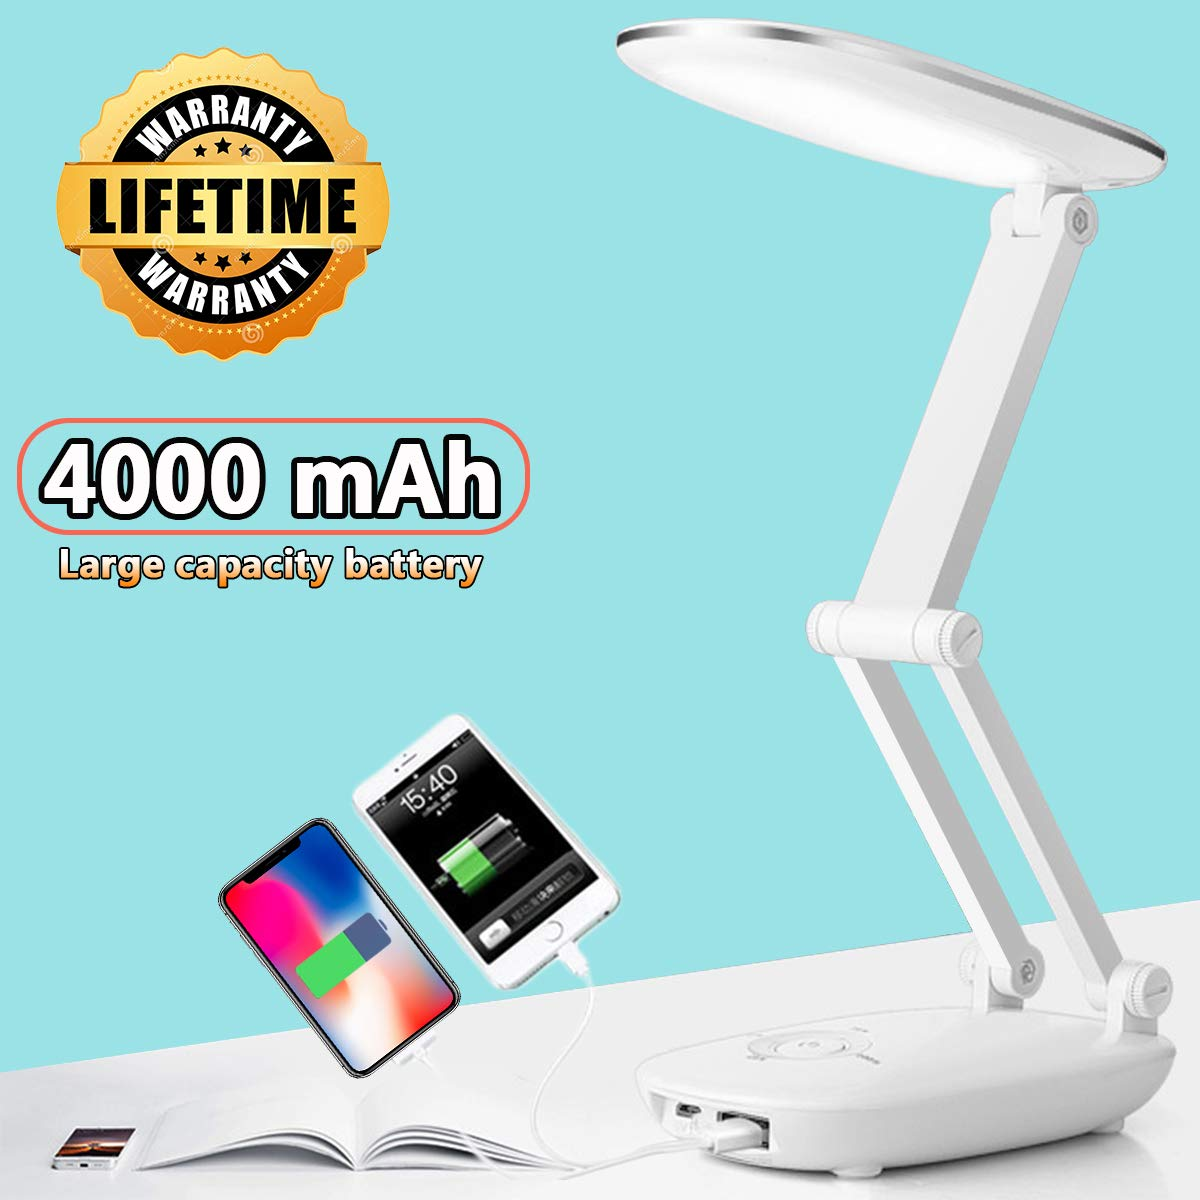 led desk lamp for kids desk lamp with usb charging port reading lights for books in bed portable folding desk lamp office women girls beside table lamp for study desk light battery powered small white